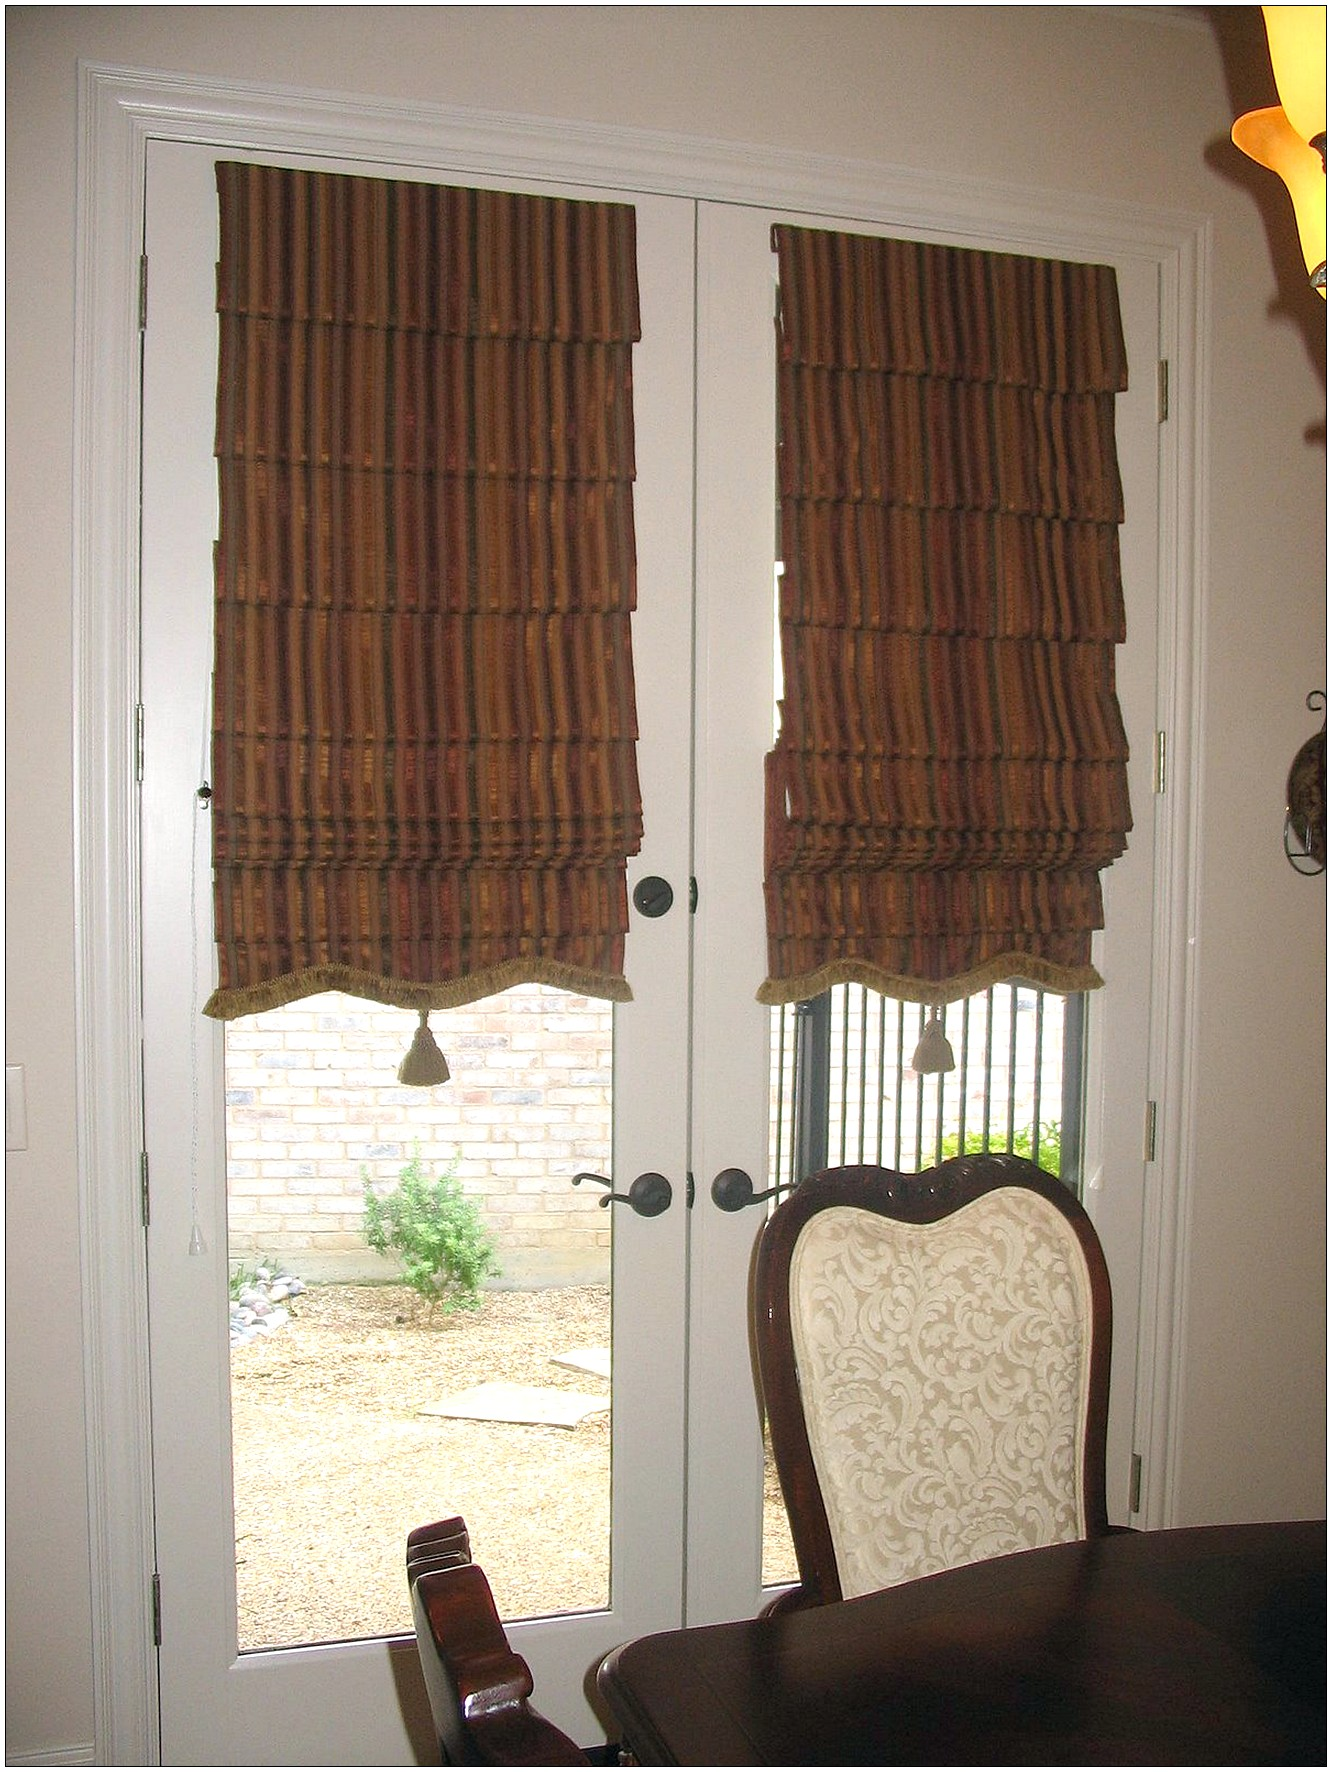 Le Meilleur Front Door Window Coverings Adorning And Adding The Extra Ce Mois Ci